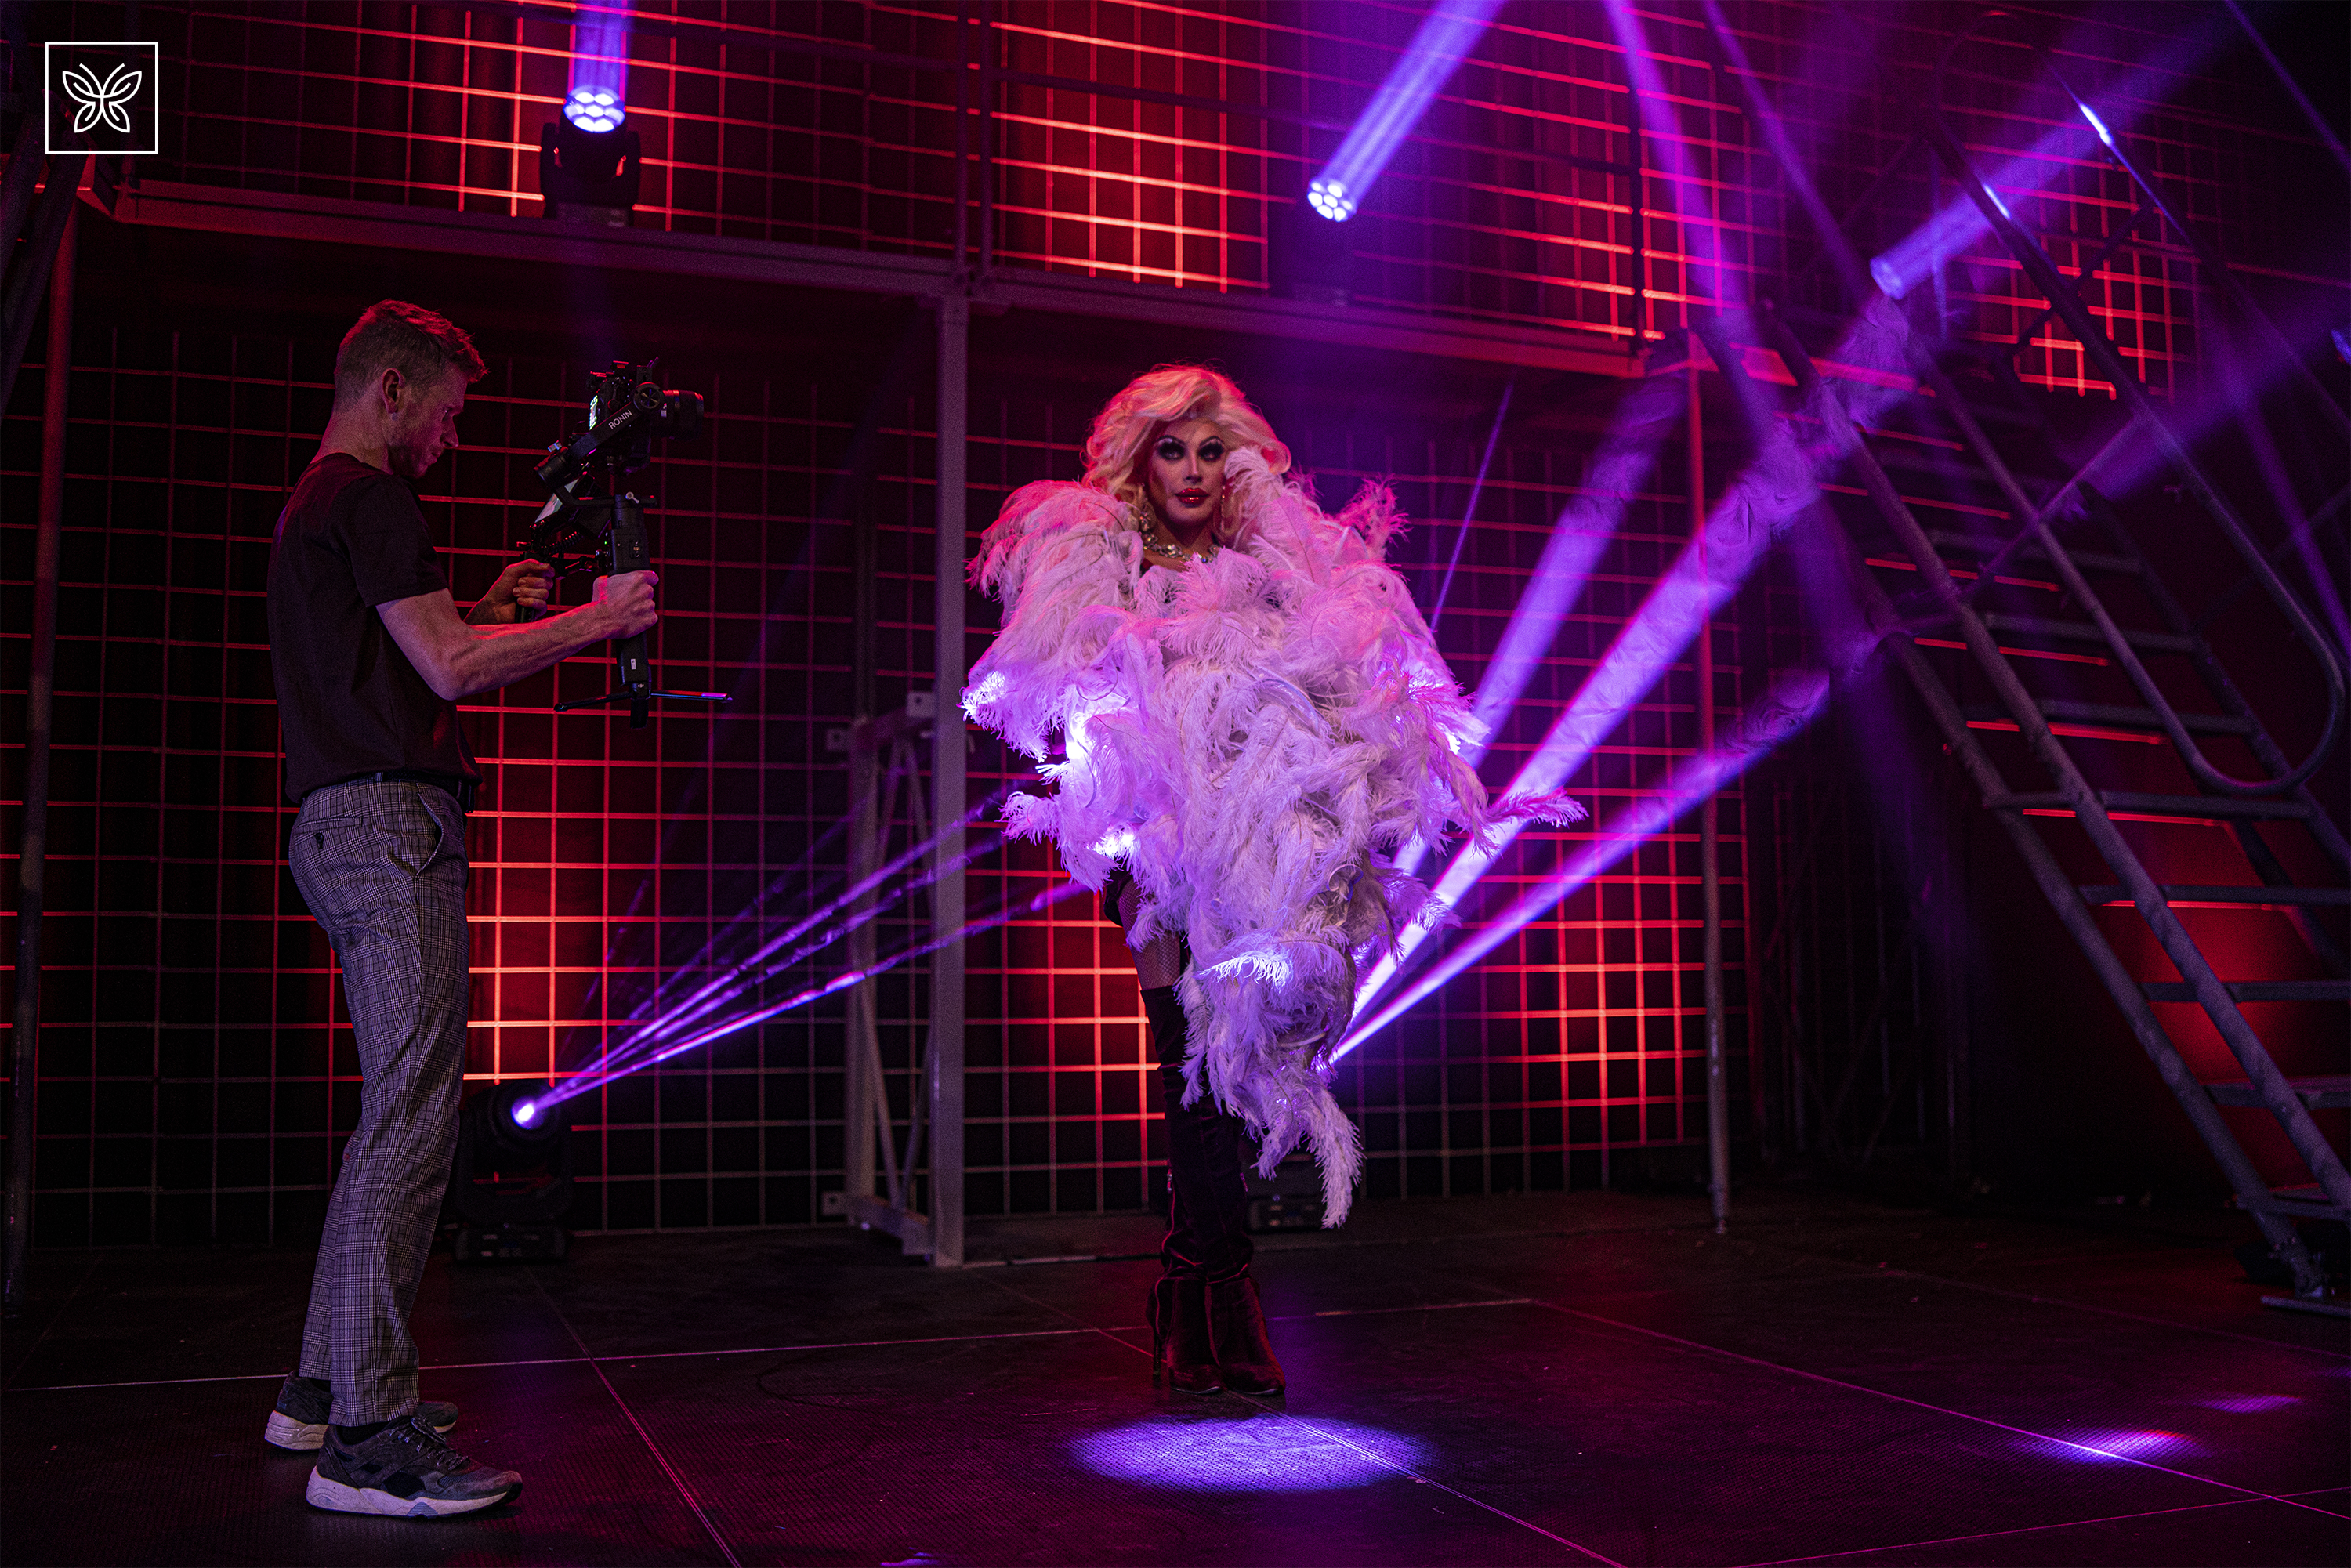 The Rotterdam Drag Show (Behind the scen